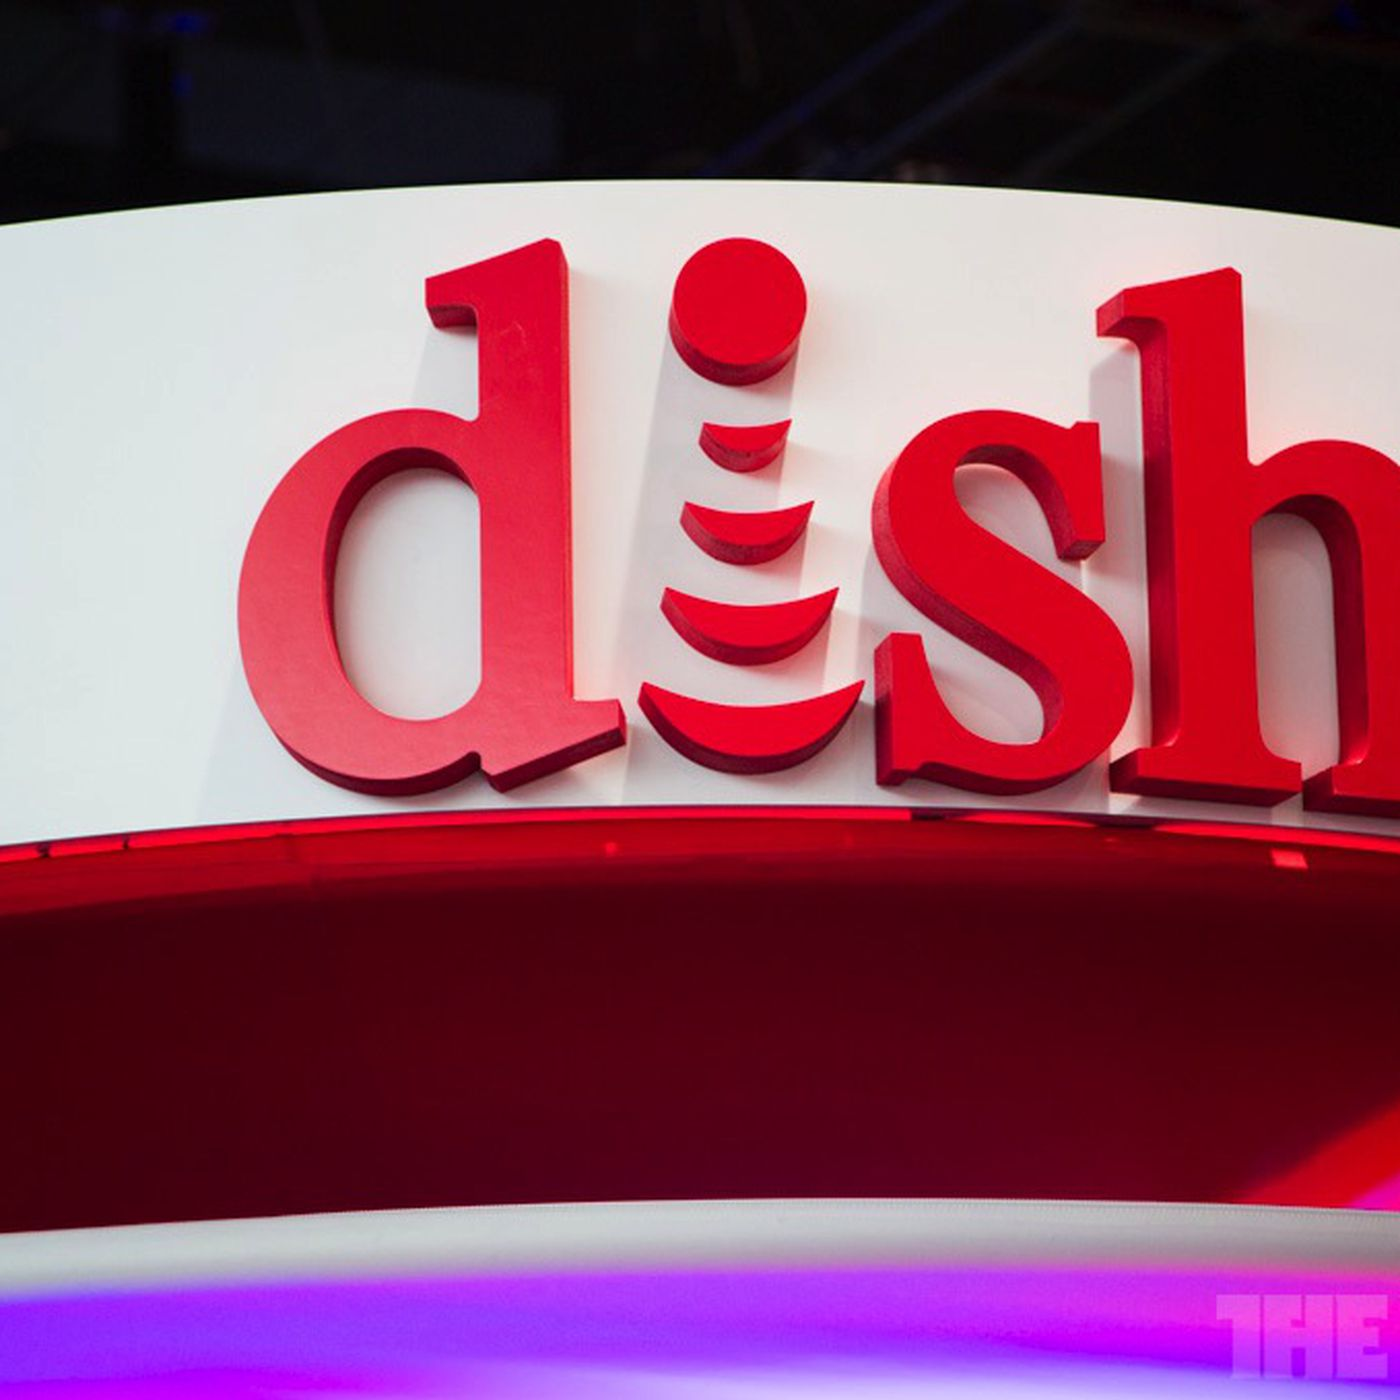 Dish strikes deal to end CBS blackout but Auto Hop is neutered in